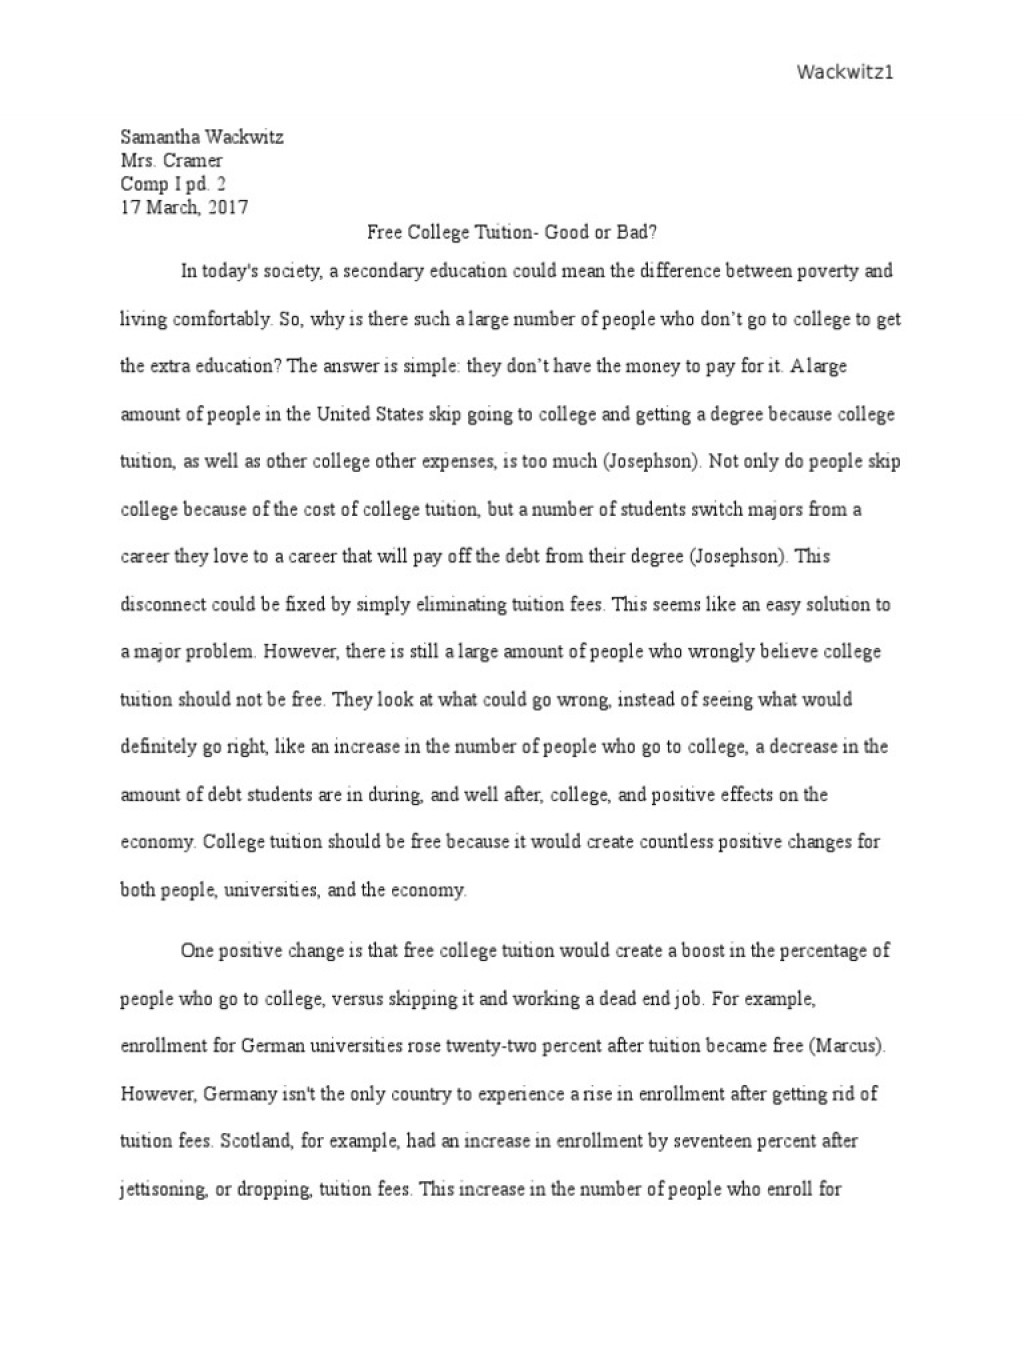 006 Free Persuasive Essay Argumentative Tuition Payments College Awesome Outline Template On Texting While Driving Examples Large